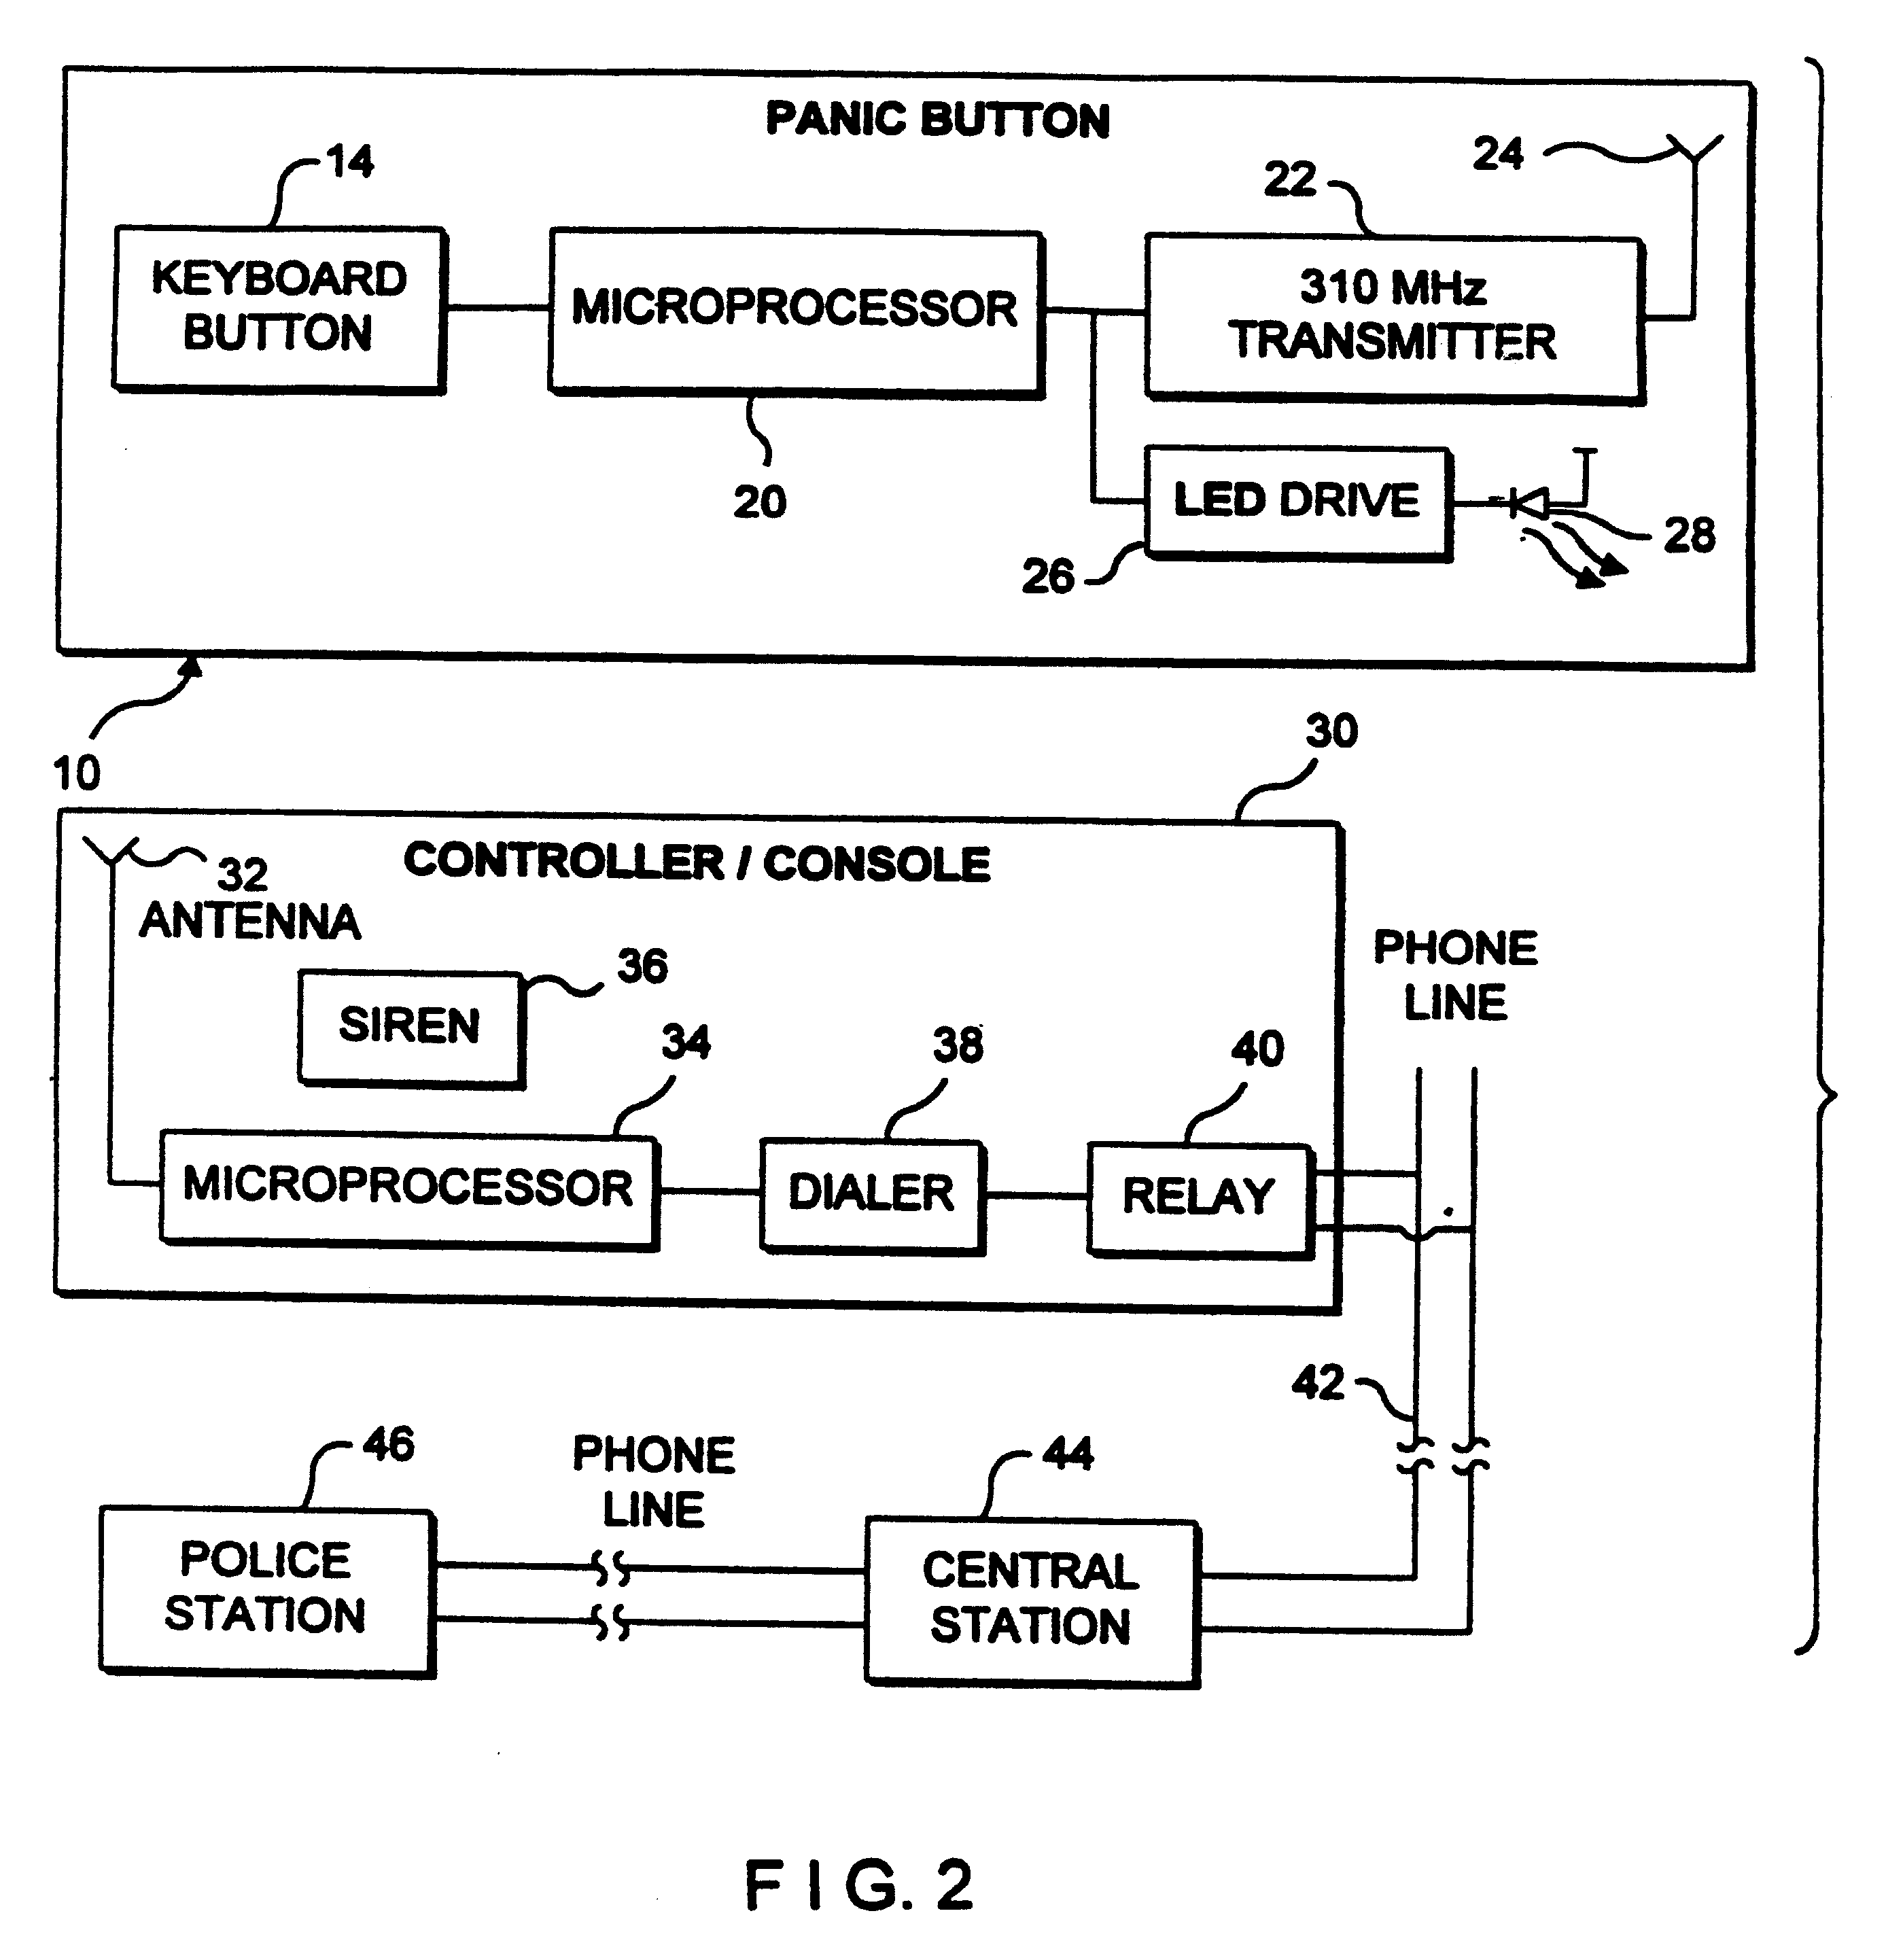 patent us6310539 panic button security alarm system patents